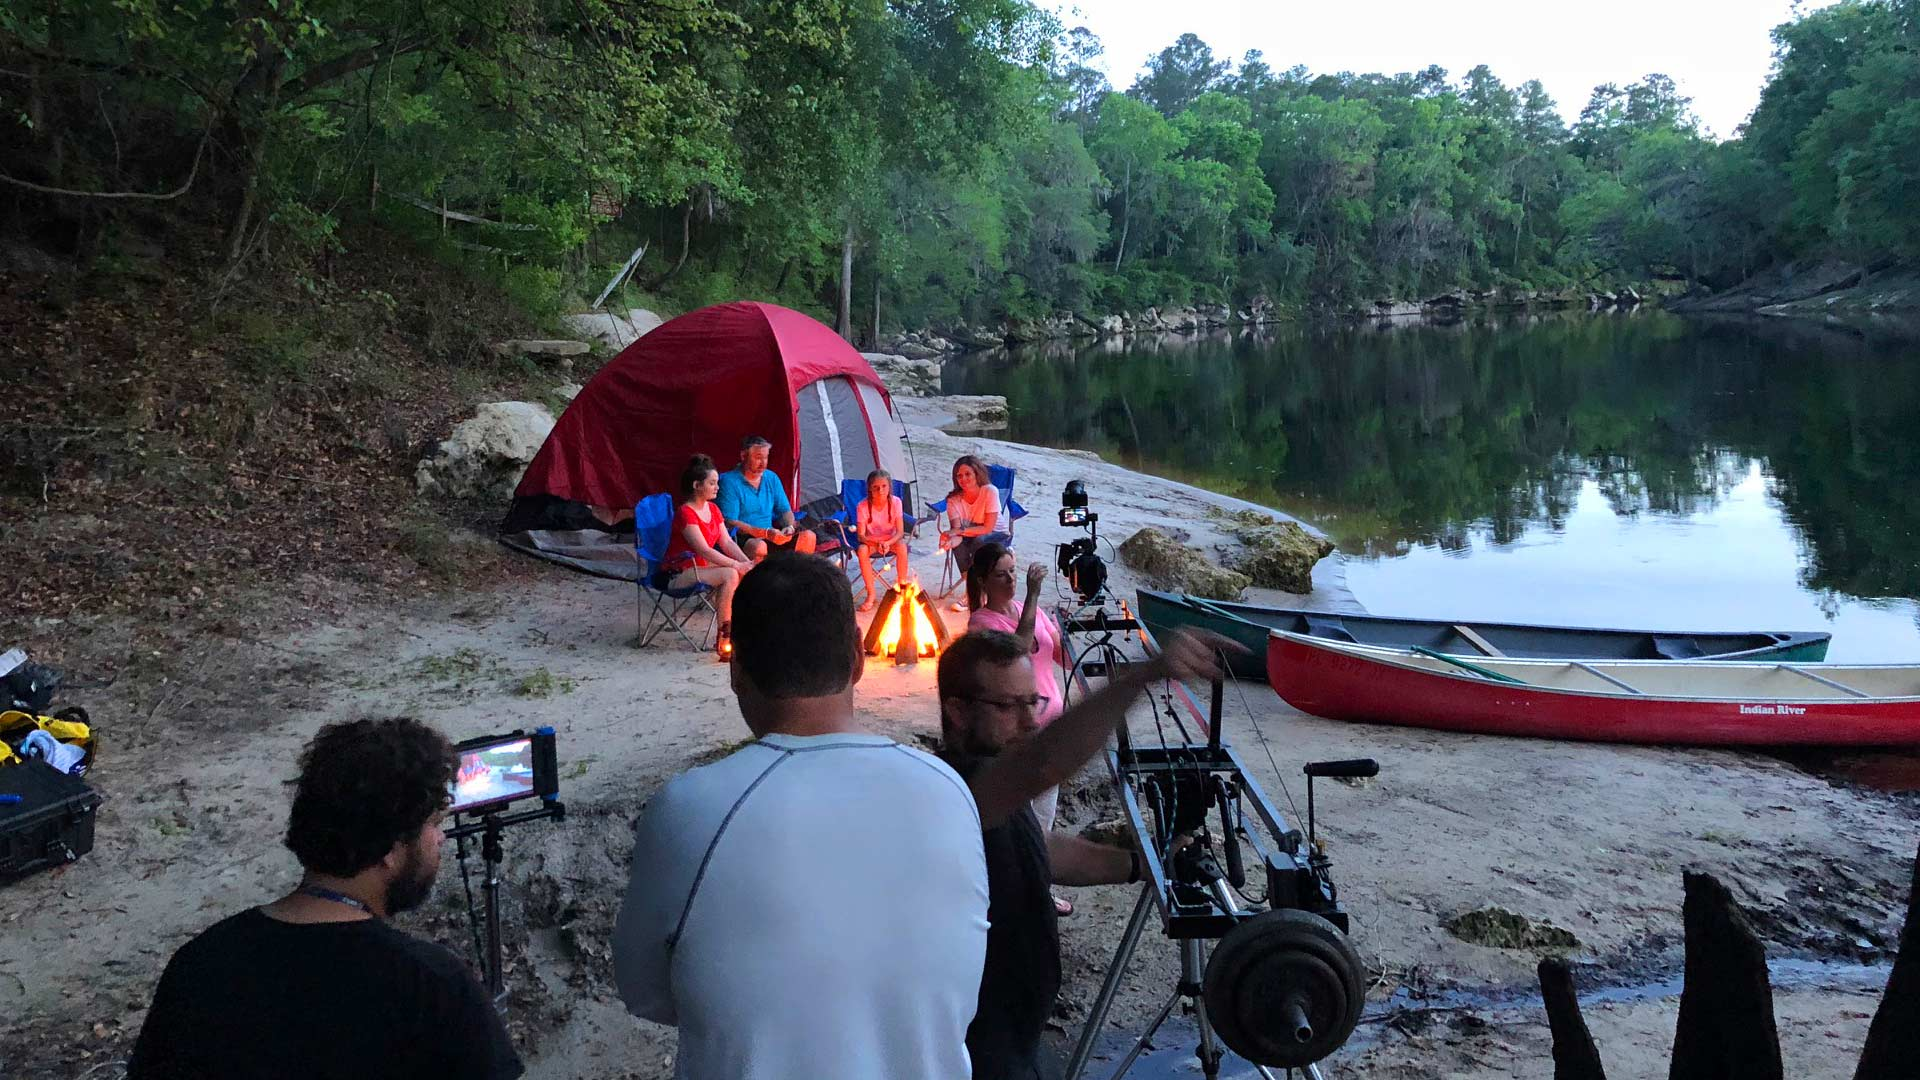 Video shoot production of family camping